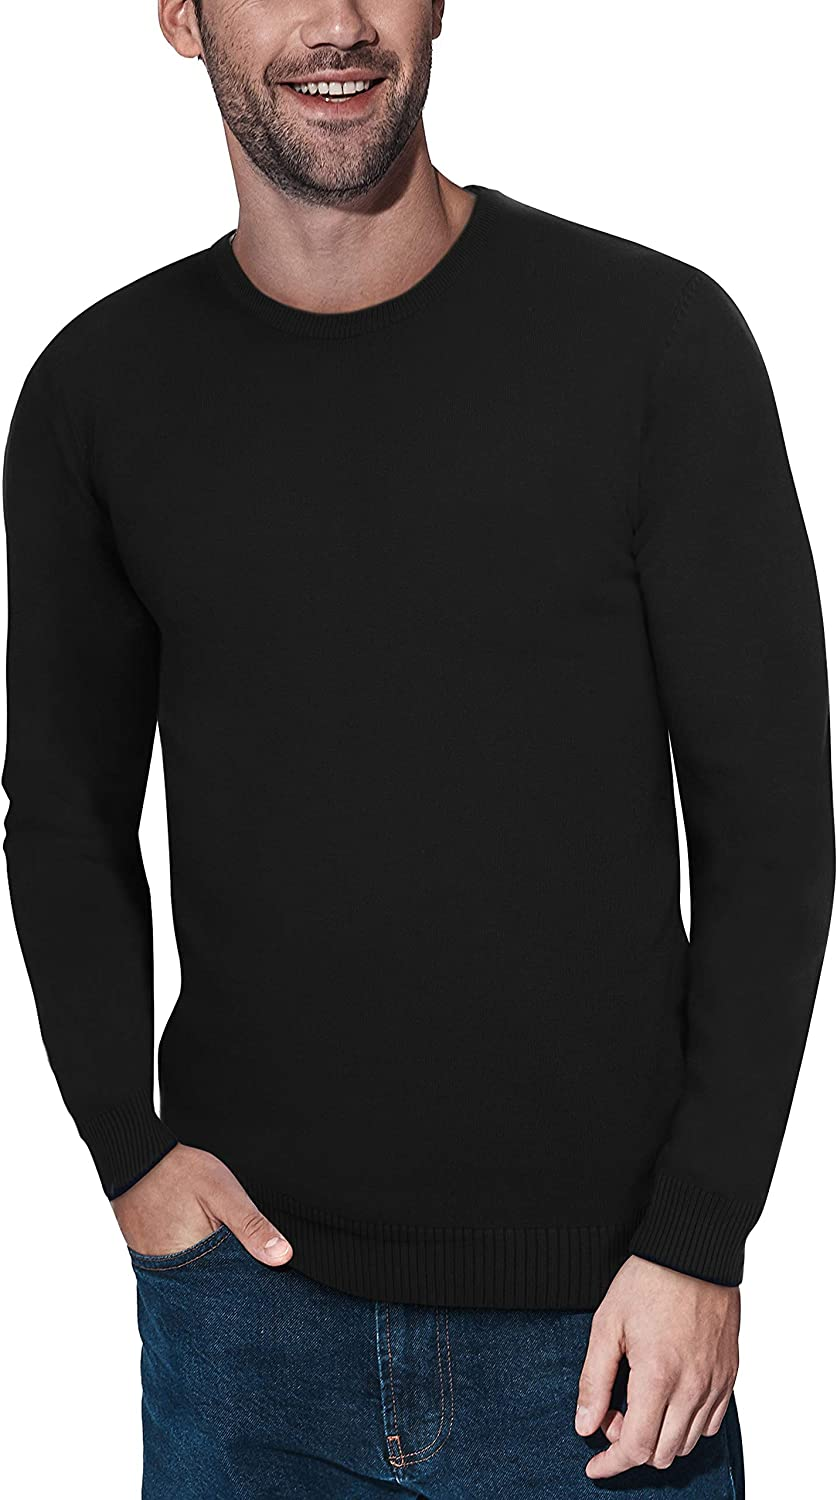 XRAY Crewneck Sweater for Men Slim Fit Ultra Soft Fitted Fashion Pullover Mens Sweater for Casual Or Dressy Wear